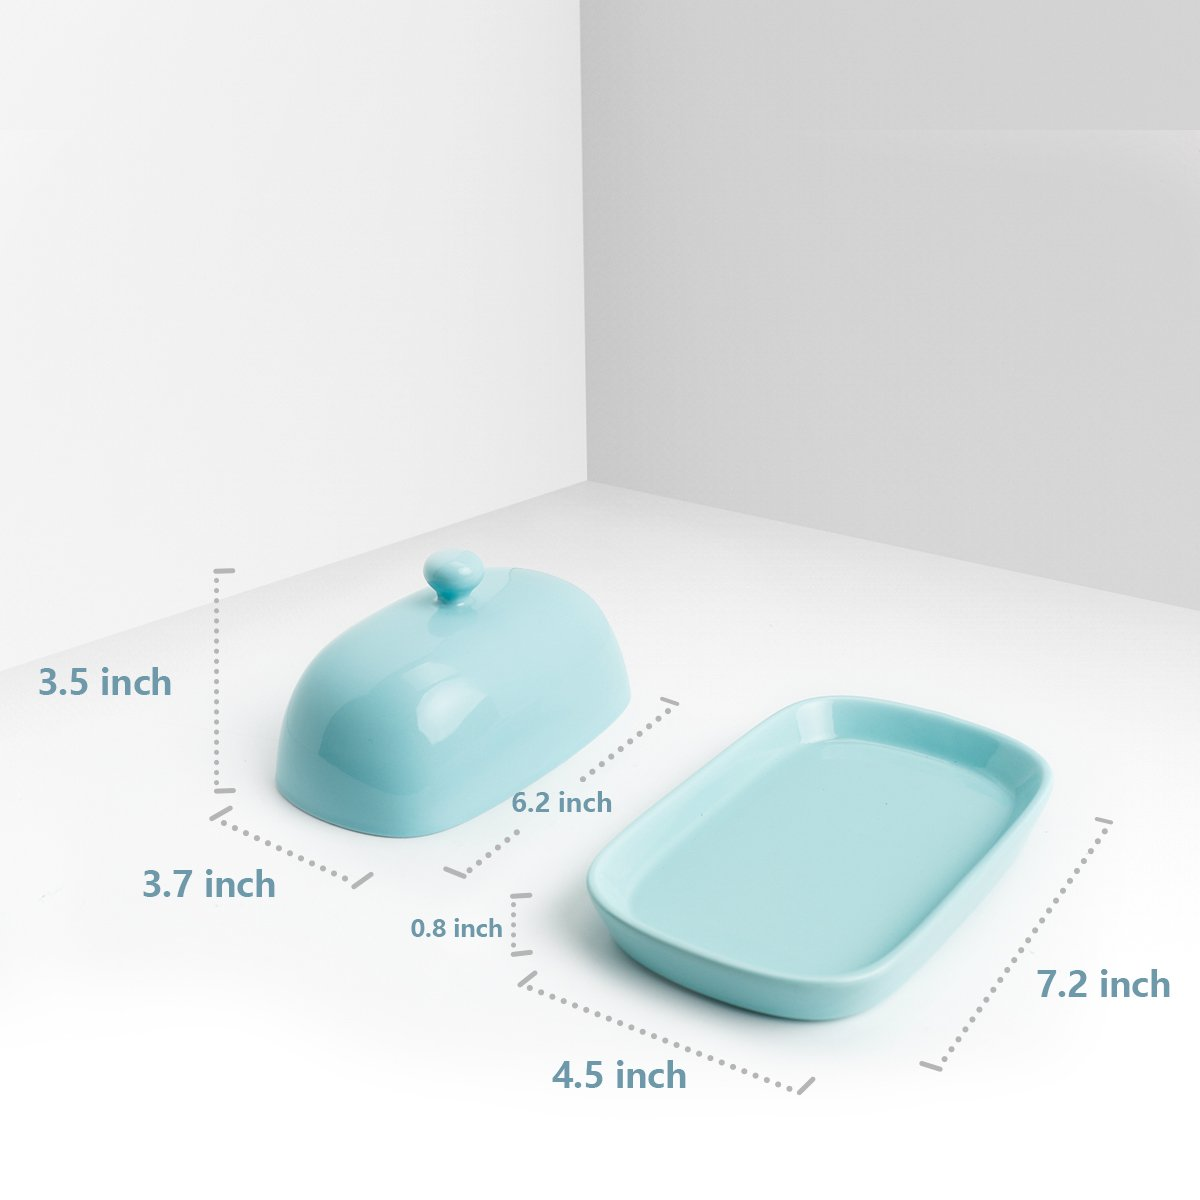 Sweese 3165 Porcelain Cute Butter Dish with Lid, Perfect for East/West Butter, Turquoise by Sweese (Image #3)